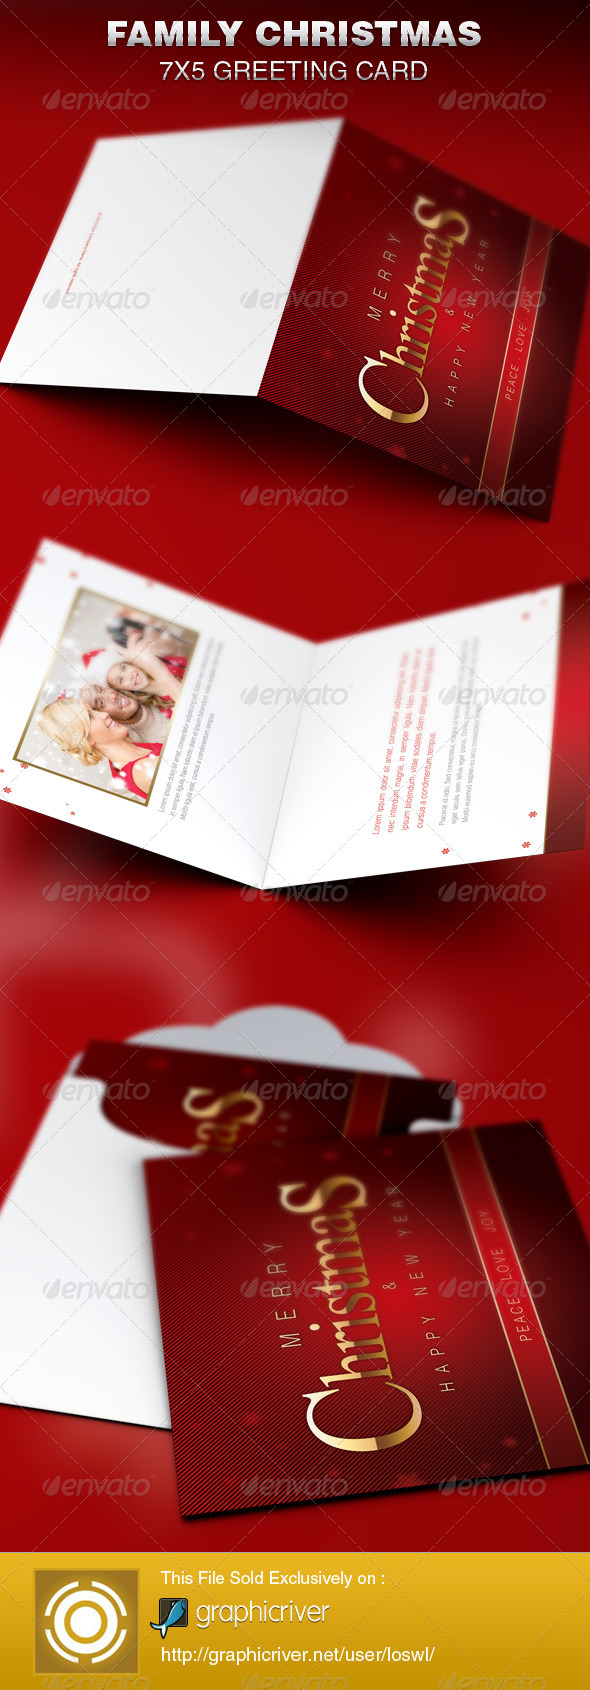 GraphicRiver Family Christmas Greeting Card Template 6338966